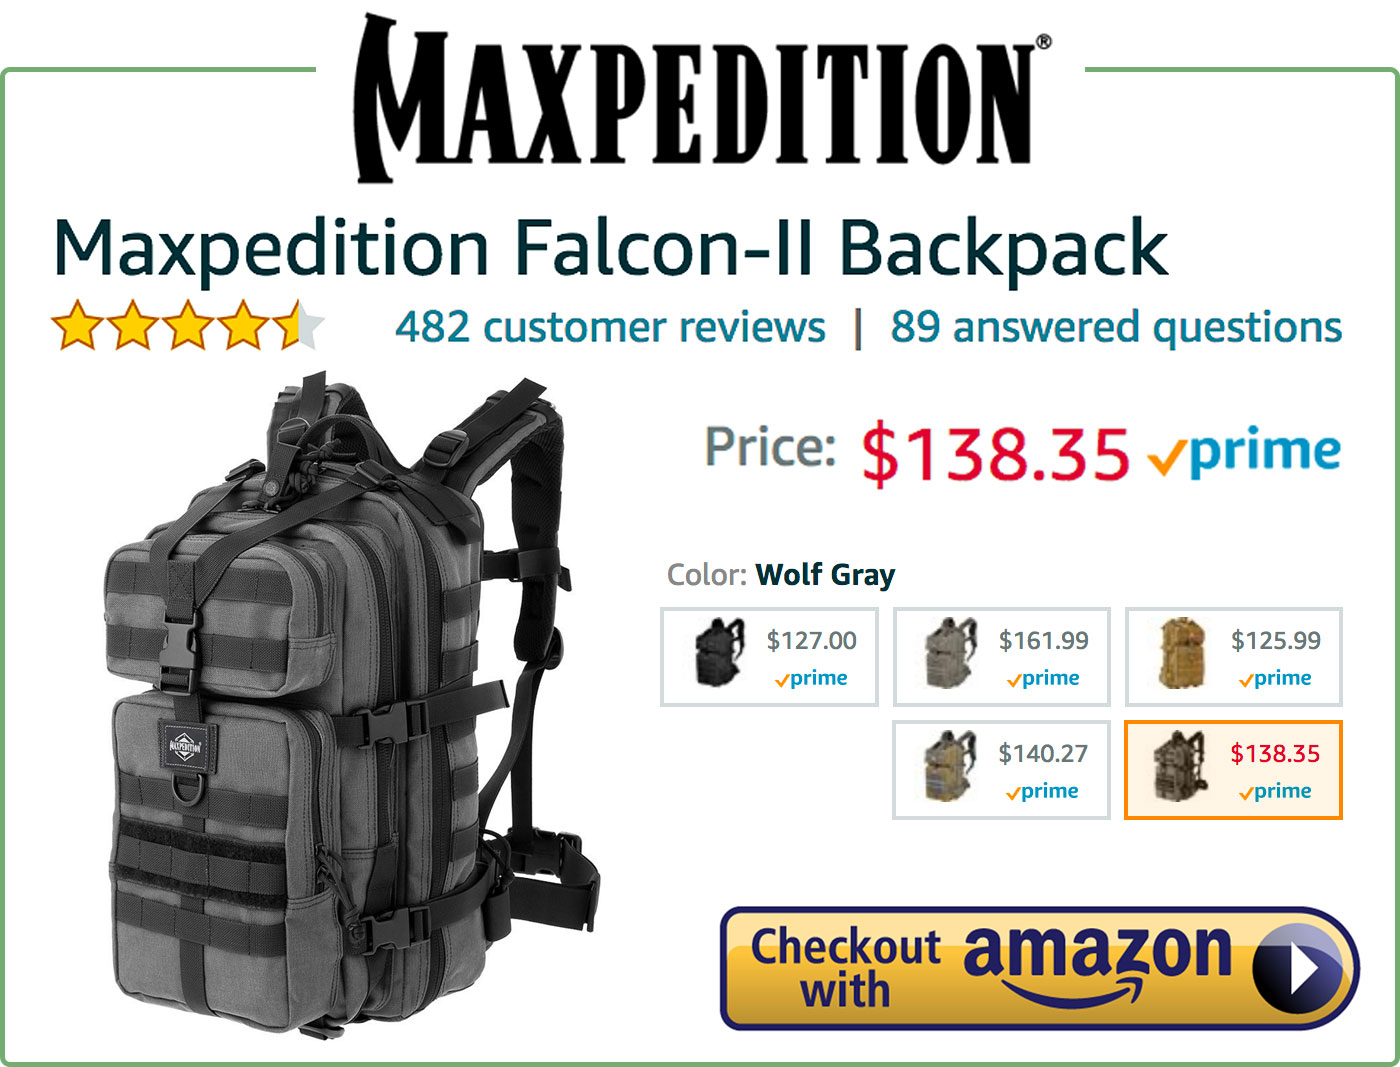 Maxpedition Falcon-II Backpack Buy Now Box